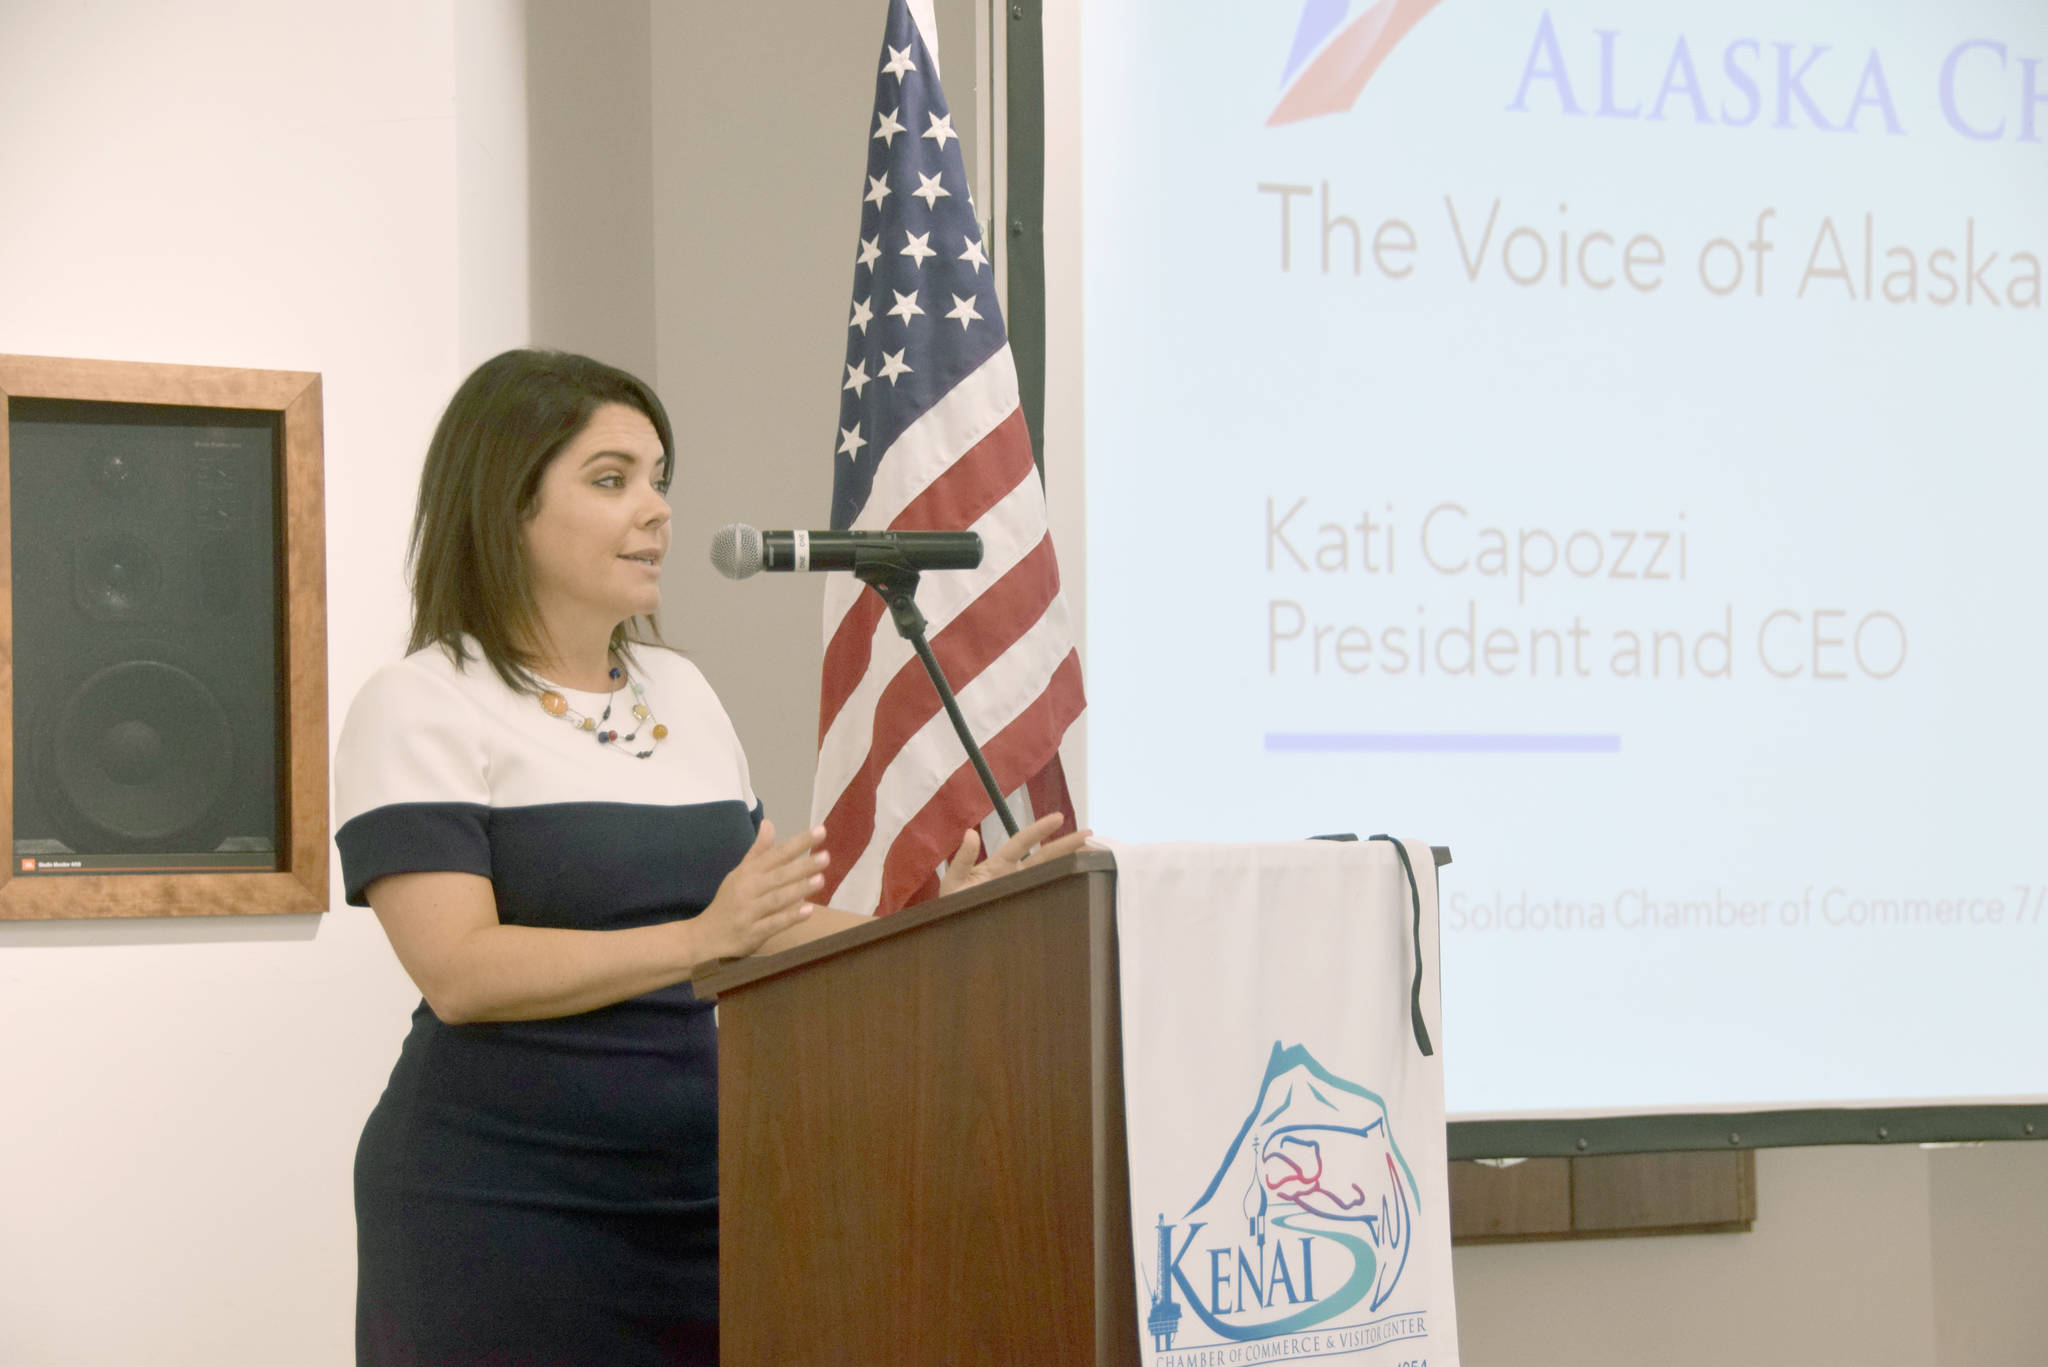 Kati Capozzi, president and CEO of the Alaska Chamber of Commerce, gives a presentation to the Kenai Chamber of Commerce on Wednesday. (Photo by Brian Mazurek/Peninsula Clarion)